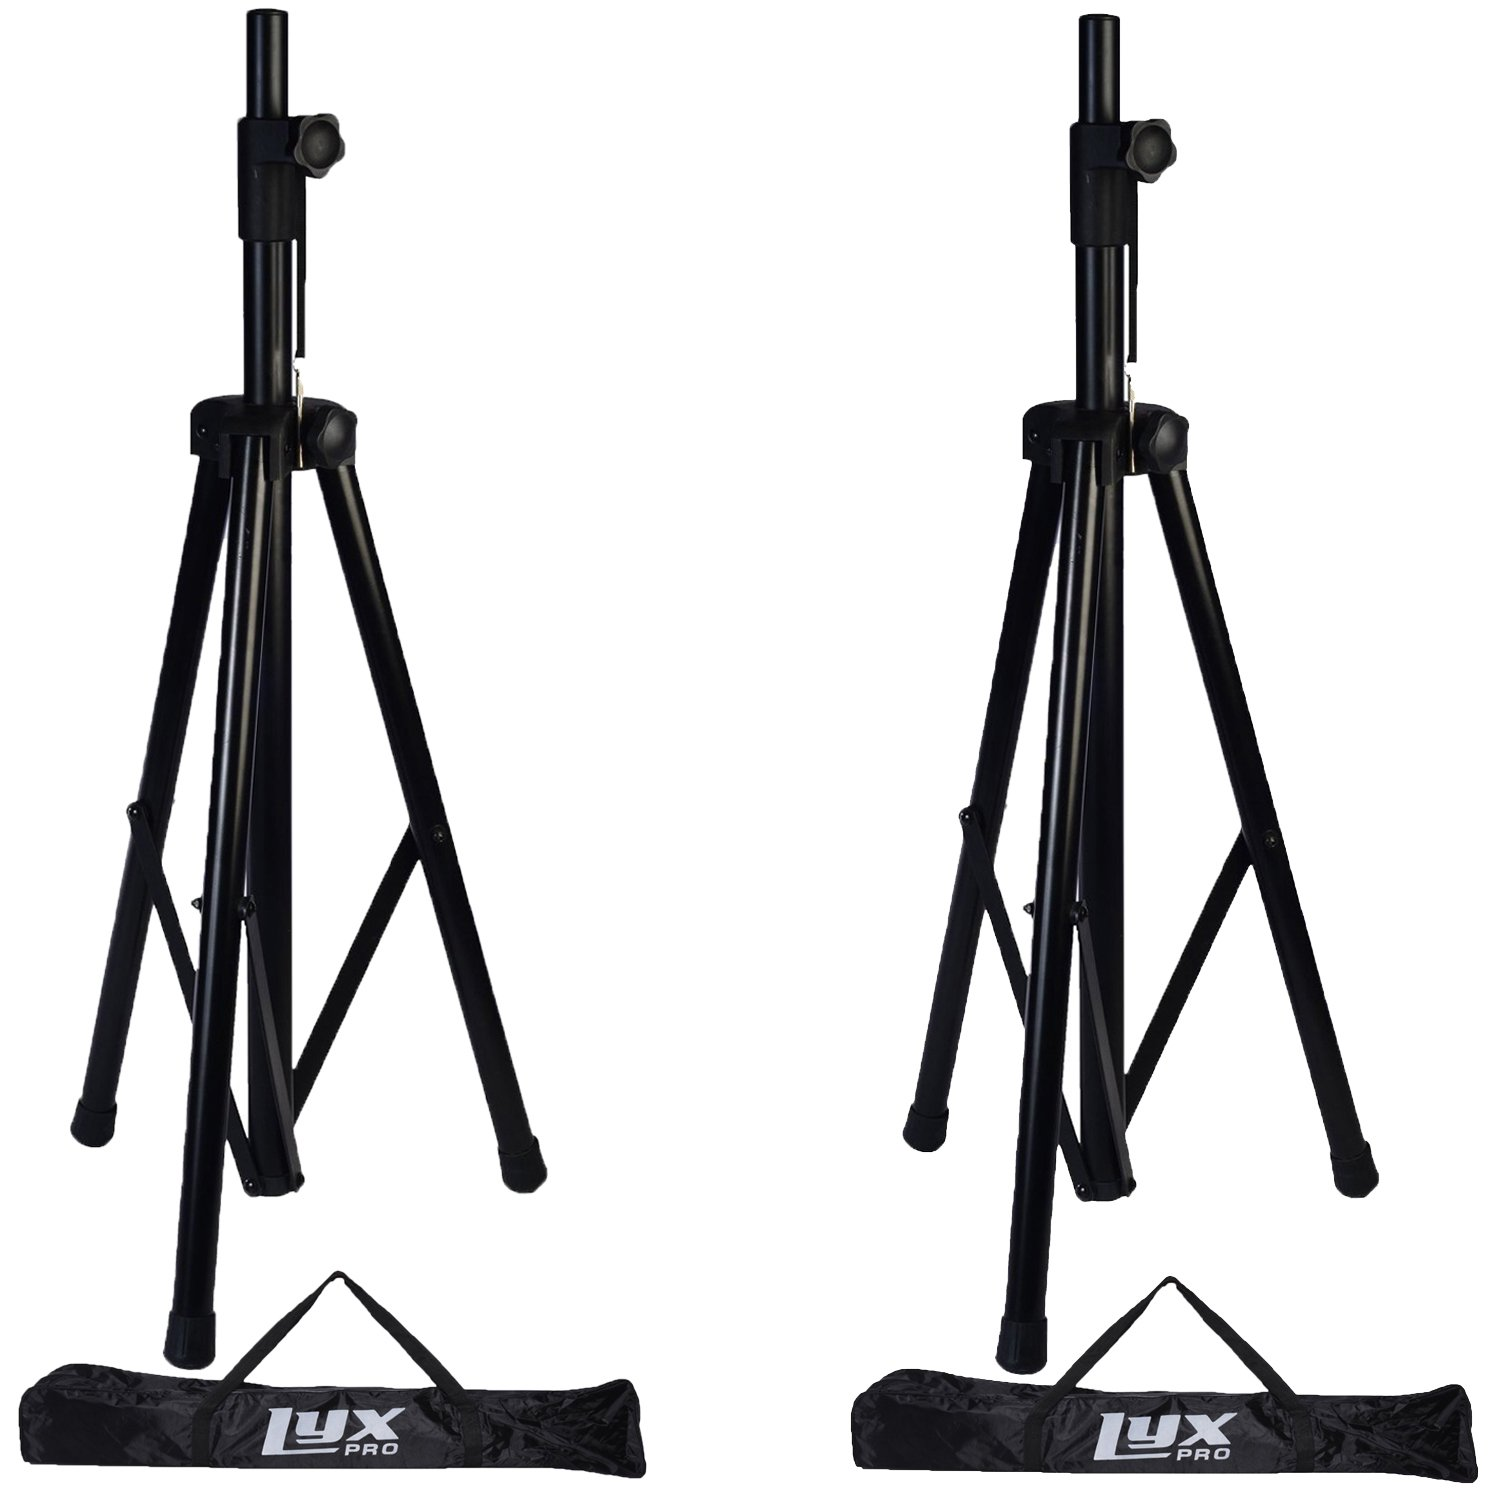 """Pair of LyxPro Speaker Stands with carrying Bags, 6 Feet Adjustable Height, Folding Tripod Design, Non Slip Feet, Locking Knob & Pin, Fits Speakers Holes 1-3/8"""" & 1-1/2"""""""